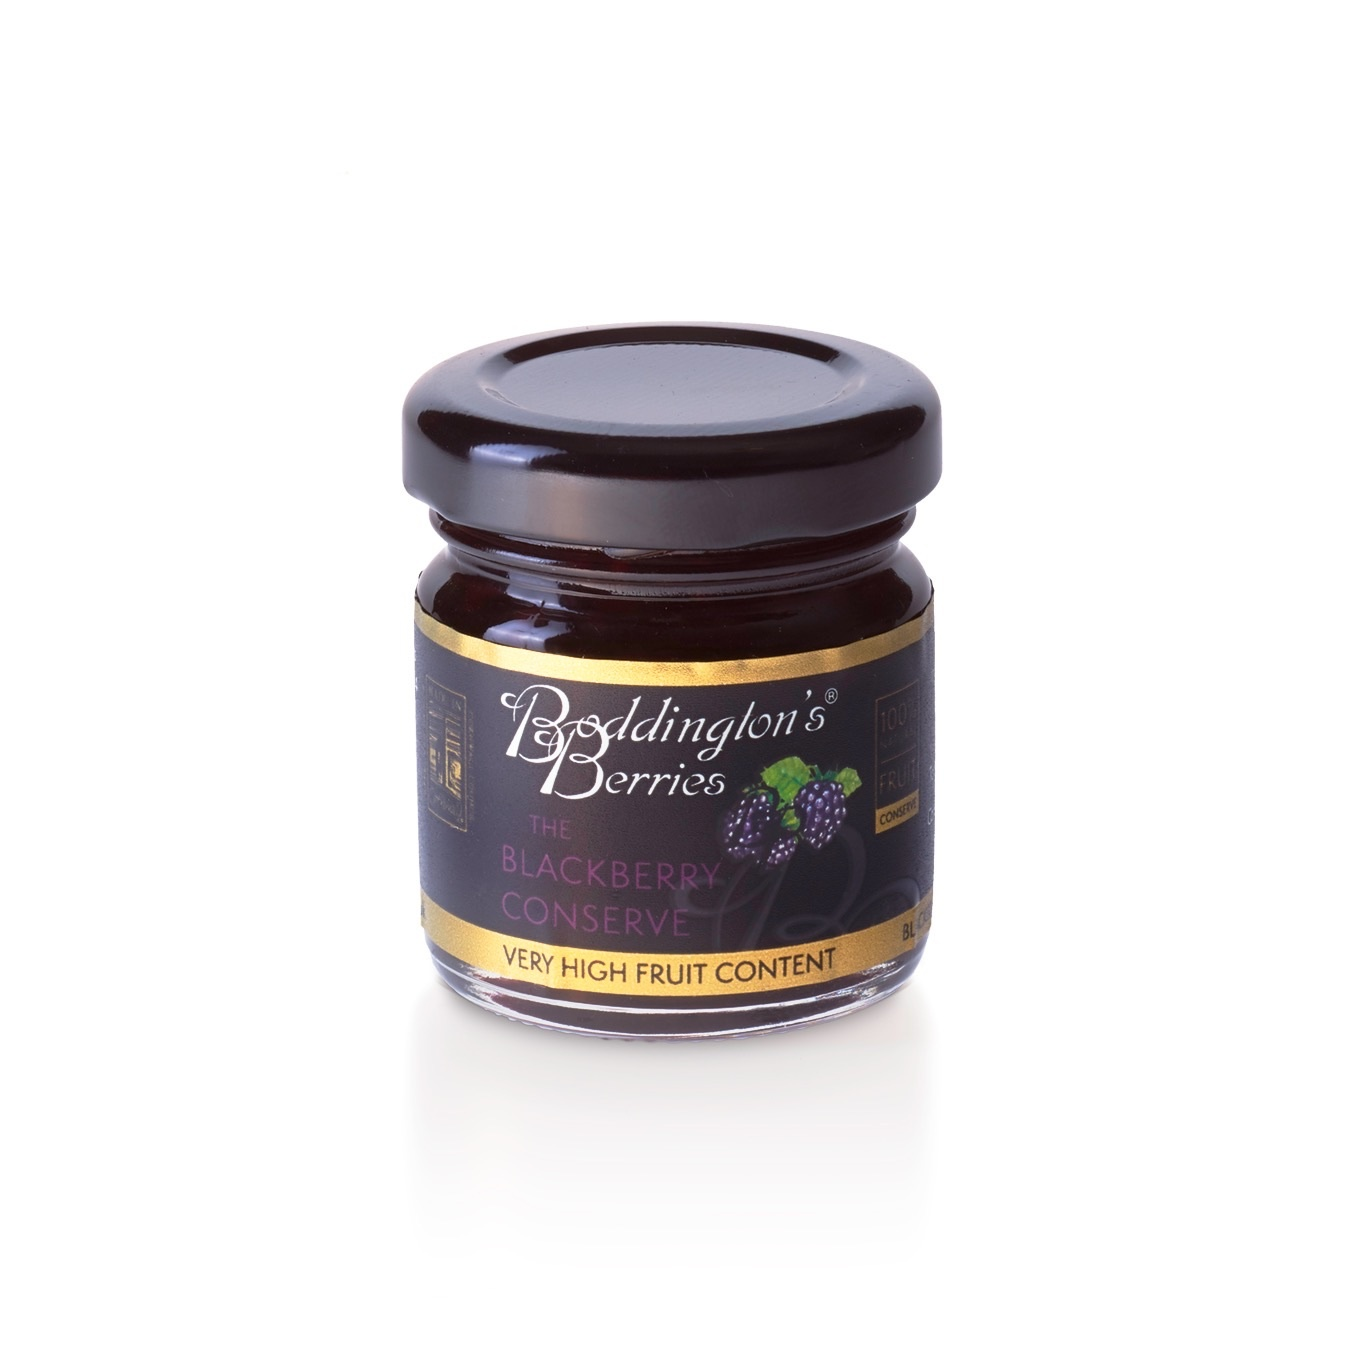 Blackberry Conserve - 48g Jar Blackberry Conserve